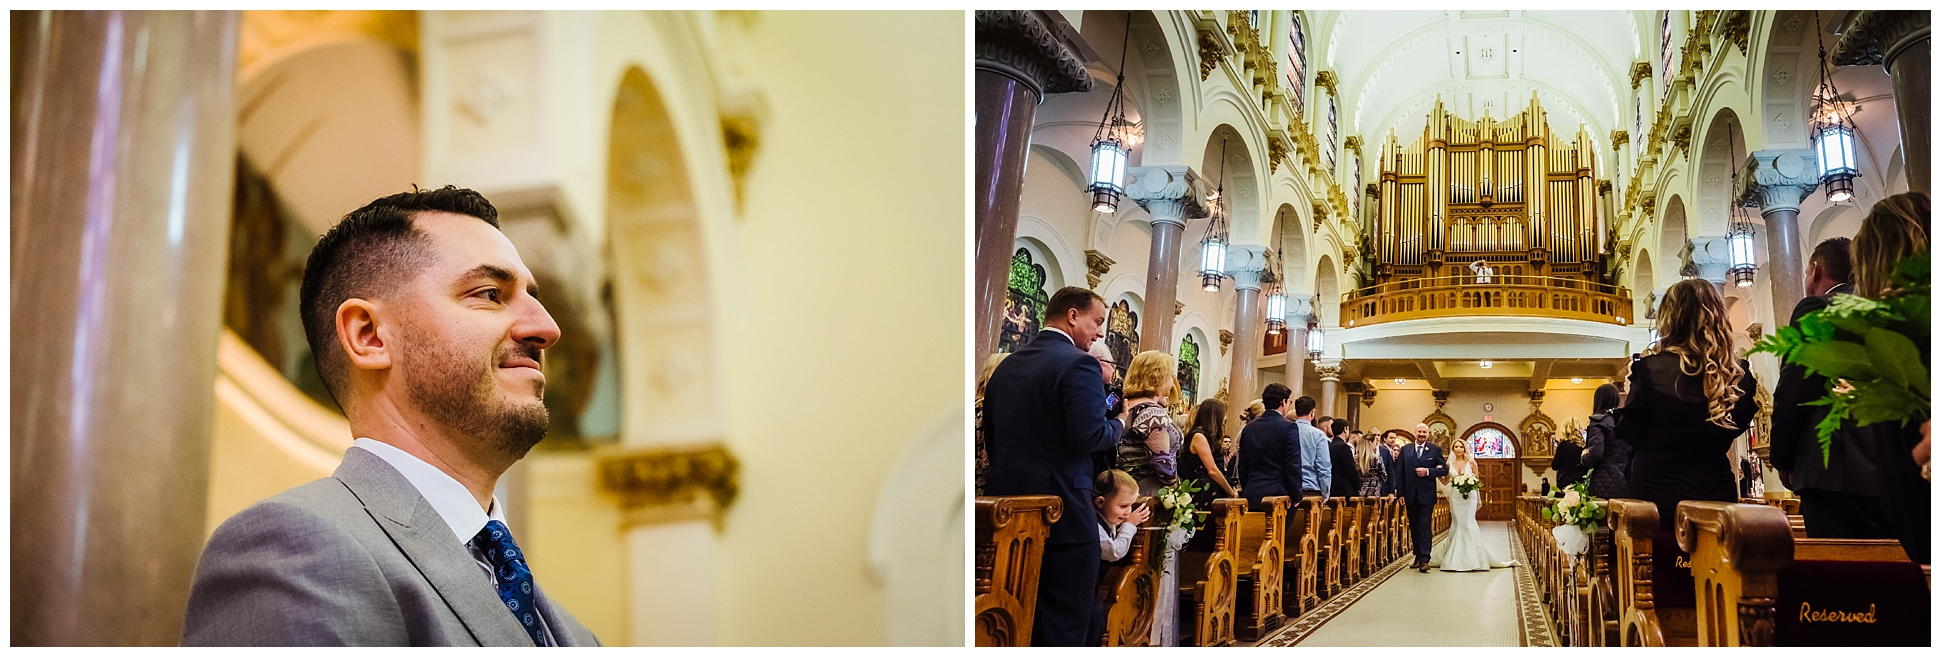 tampa-wedding-photographer-sacred-heart-armature-works-theater-riverfront_0020.jpg